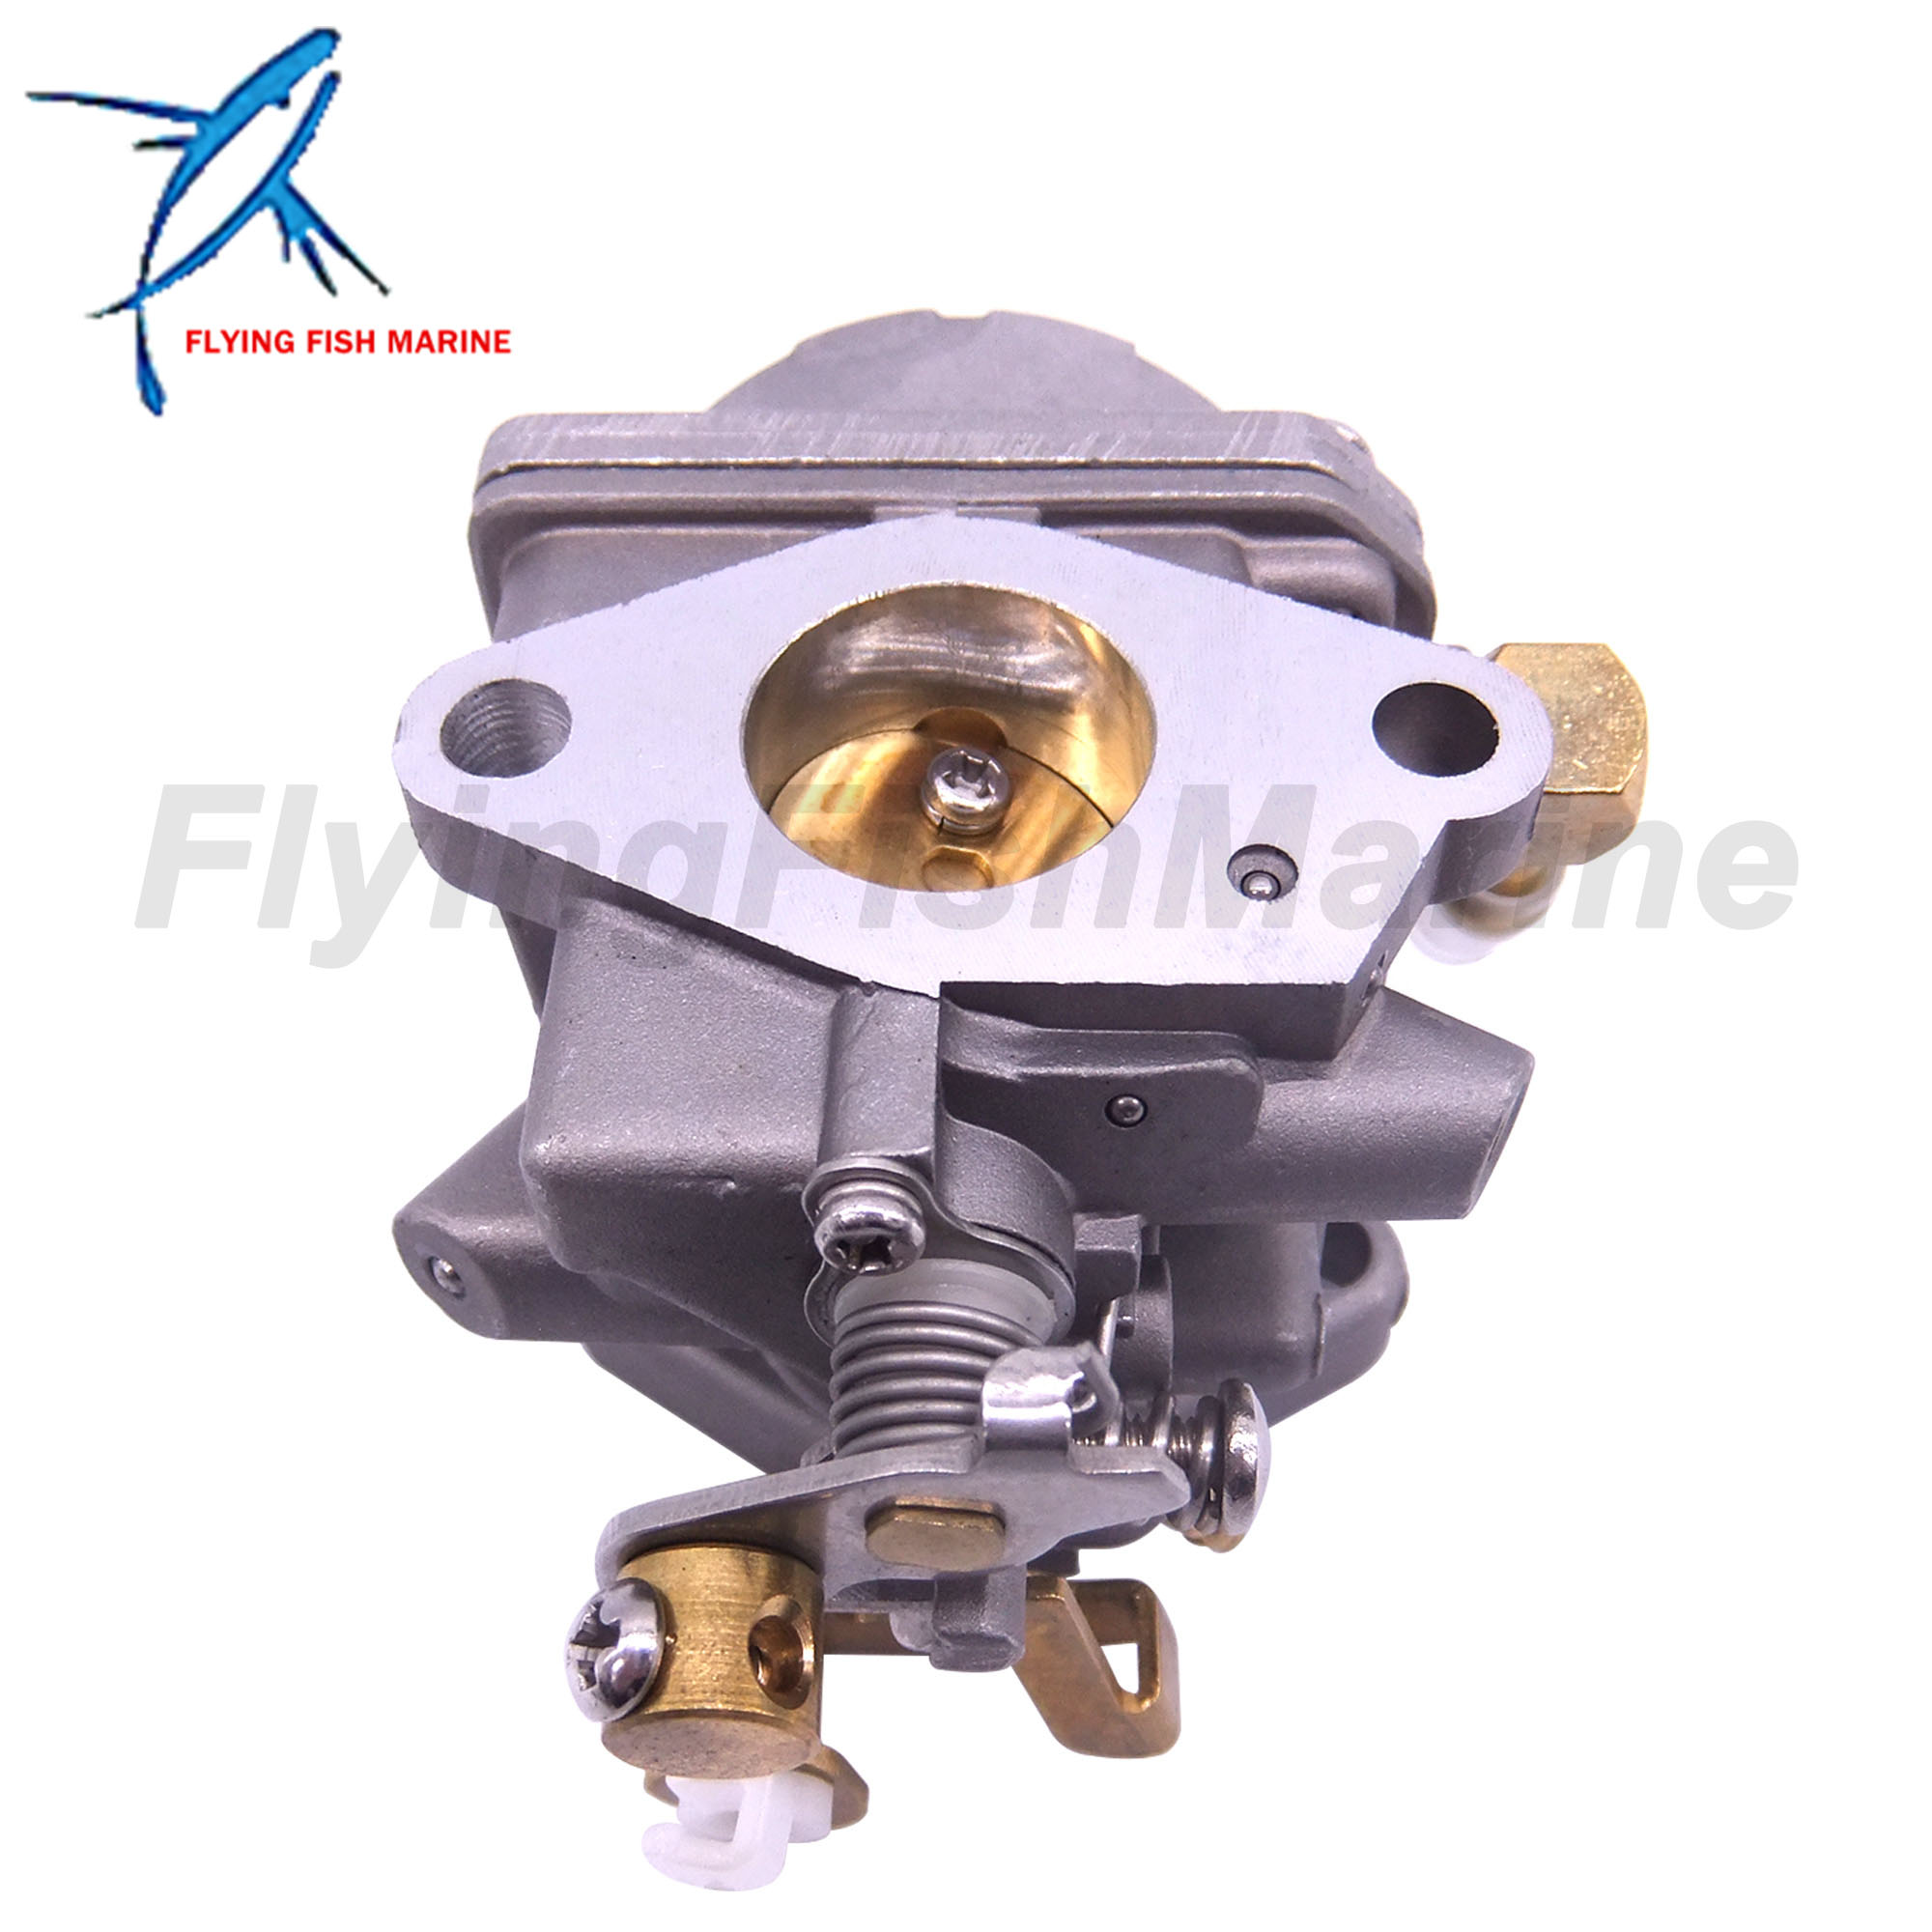 13200-91J70 Carburetor Carb Assy For Suzuki Boat Motor DF4 DF6 4-Stroke